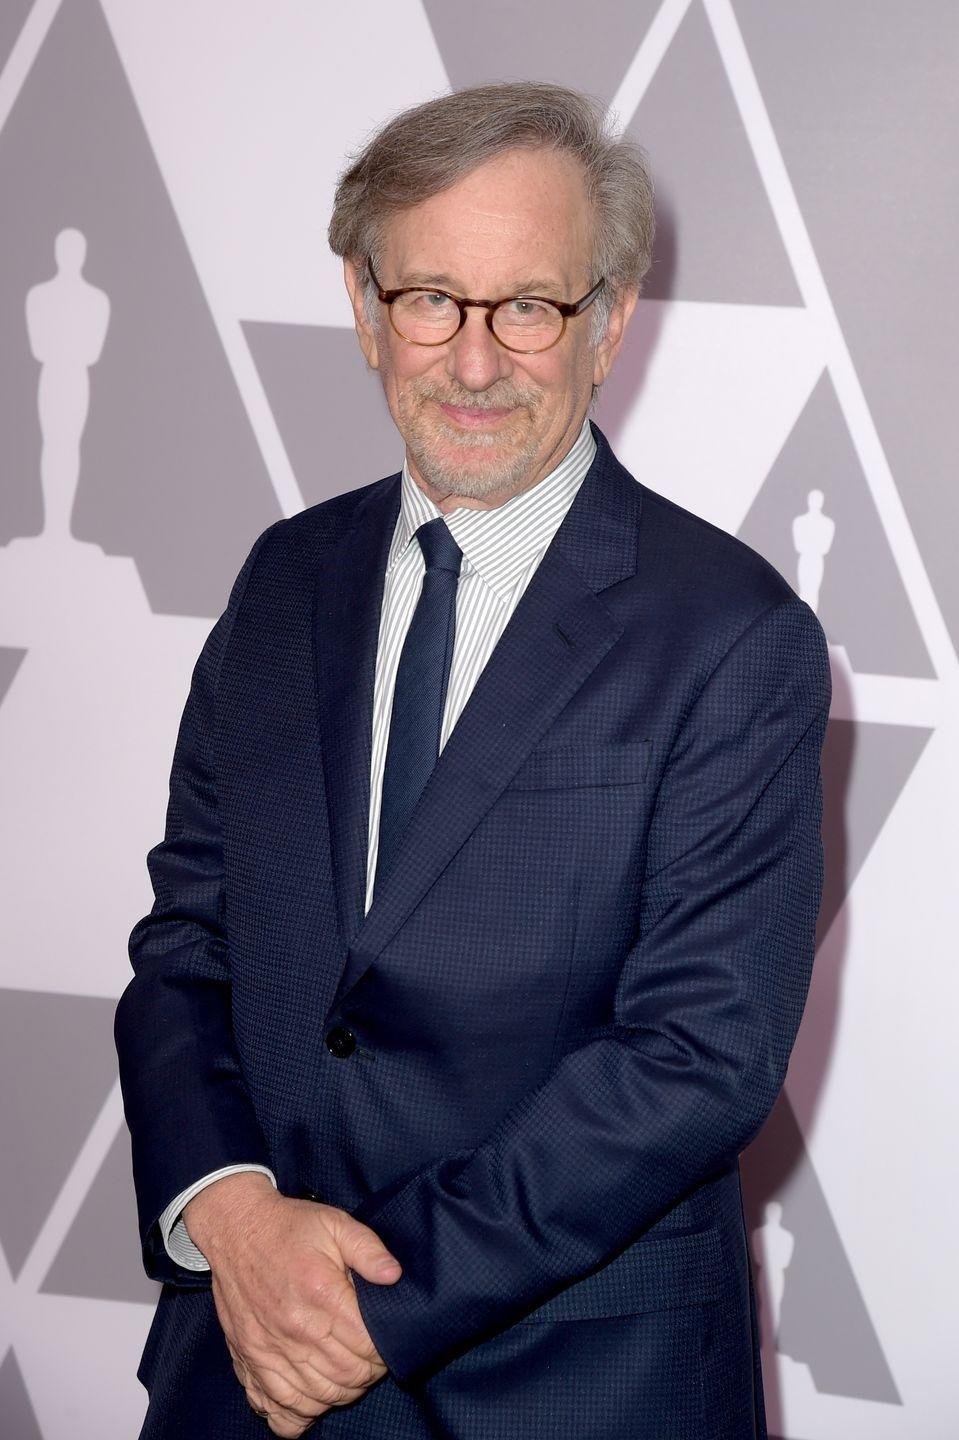 """<p>We wonder if Spielberg ever drew inspiration for his films from his time in the fraternity house? The <em>Jaws </em>director was a <a href=""""https://twitter.com/thetachiihq/status/1009118711578611712?lang=en"""" rel=""""nofollow noopener"""" target=""""_blank"""" data-ylk=""""slk:member of Theta Chi"""" class=""""link rapid-noclick-resp"""">member of Theta Chi</a> during his time as a student at California State University at Long Beach. </p>"""